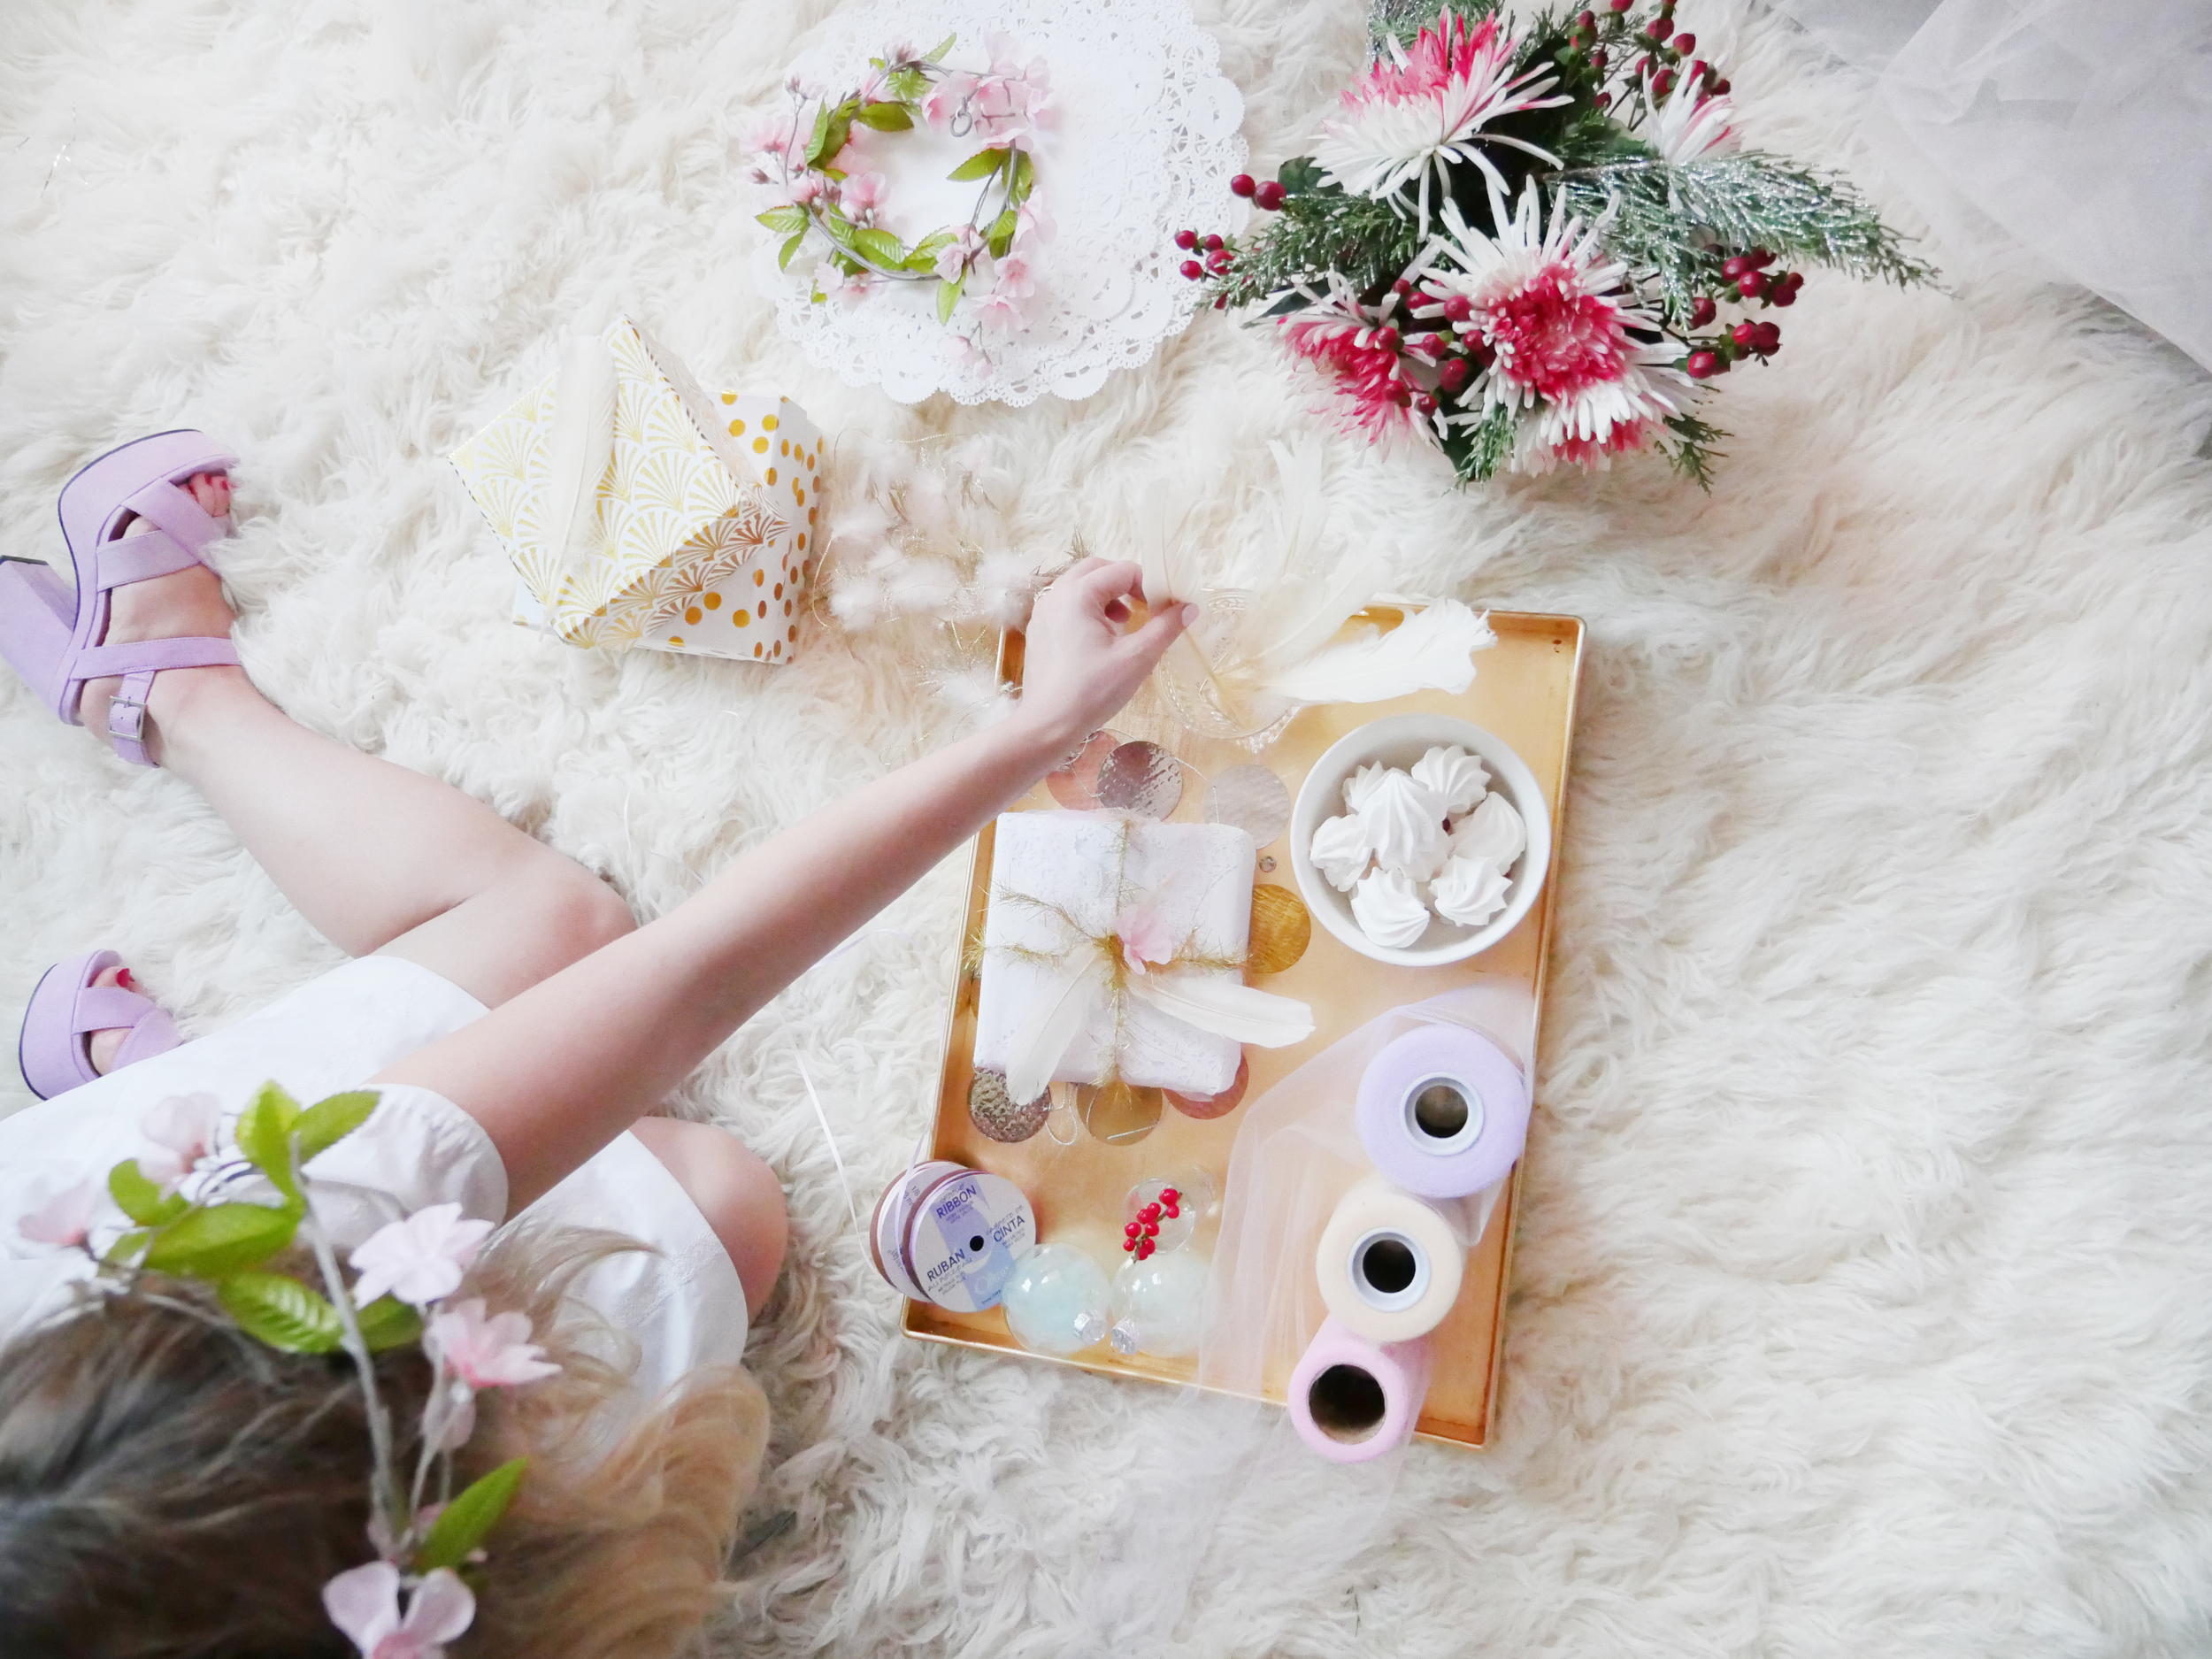 White, Gold and Pastel Colors for this Holiday Gifts! Wrapping away with Feathers, Gold and White Boxes, Tulle, Doilies and Flowers.